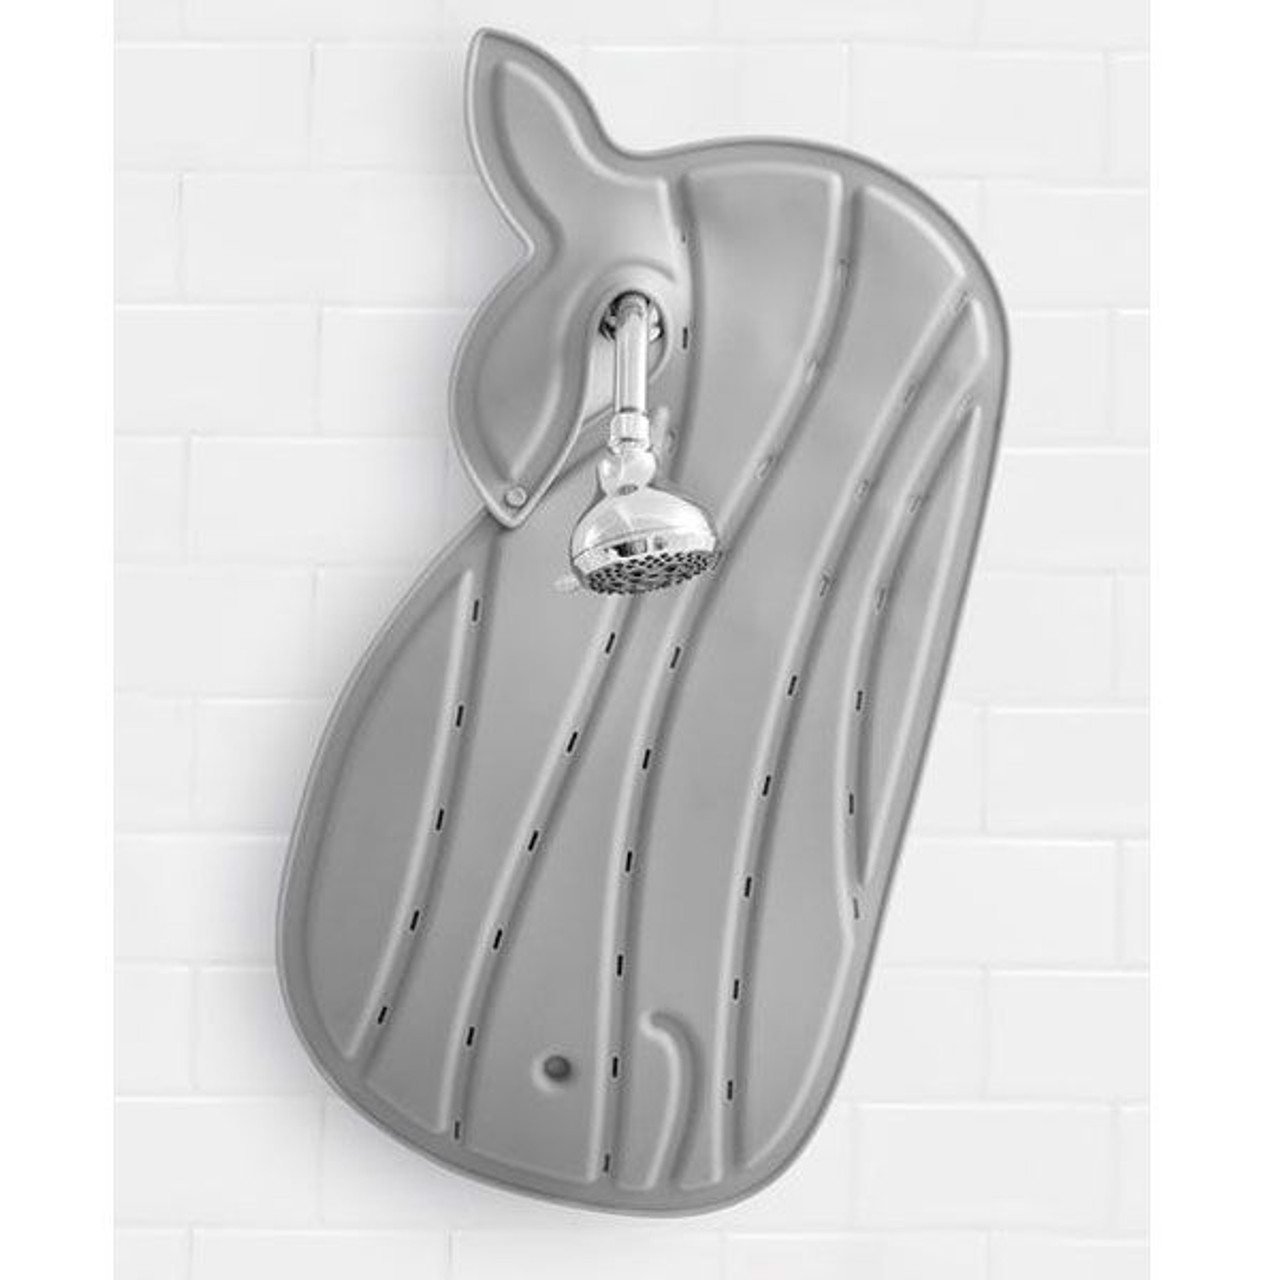 Skip Hop Moby Bath Mat at Baby Barn Discounts Designed with comfort in mind, Skip Hop's Moby® Bath Mat provides a textured, non-slip surface in your little one's bath.